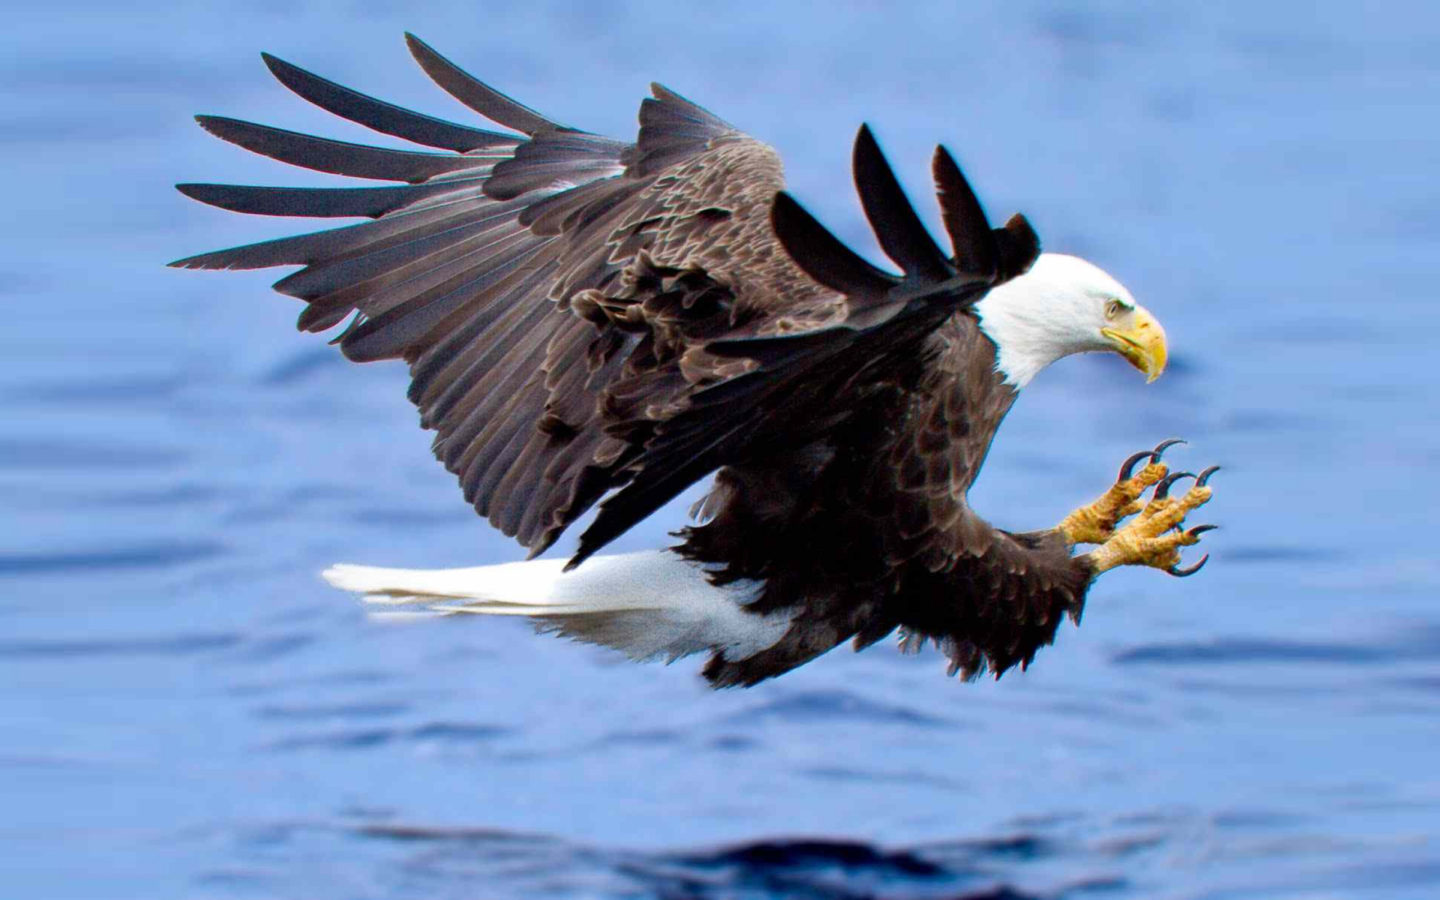 3d Hq Wallpaper Download Attack Of The Bald Eagle Hunting For Fish In The Lake